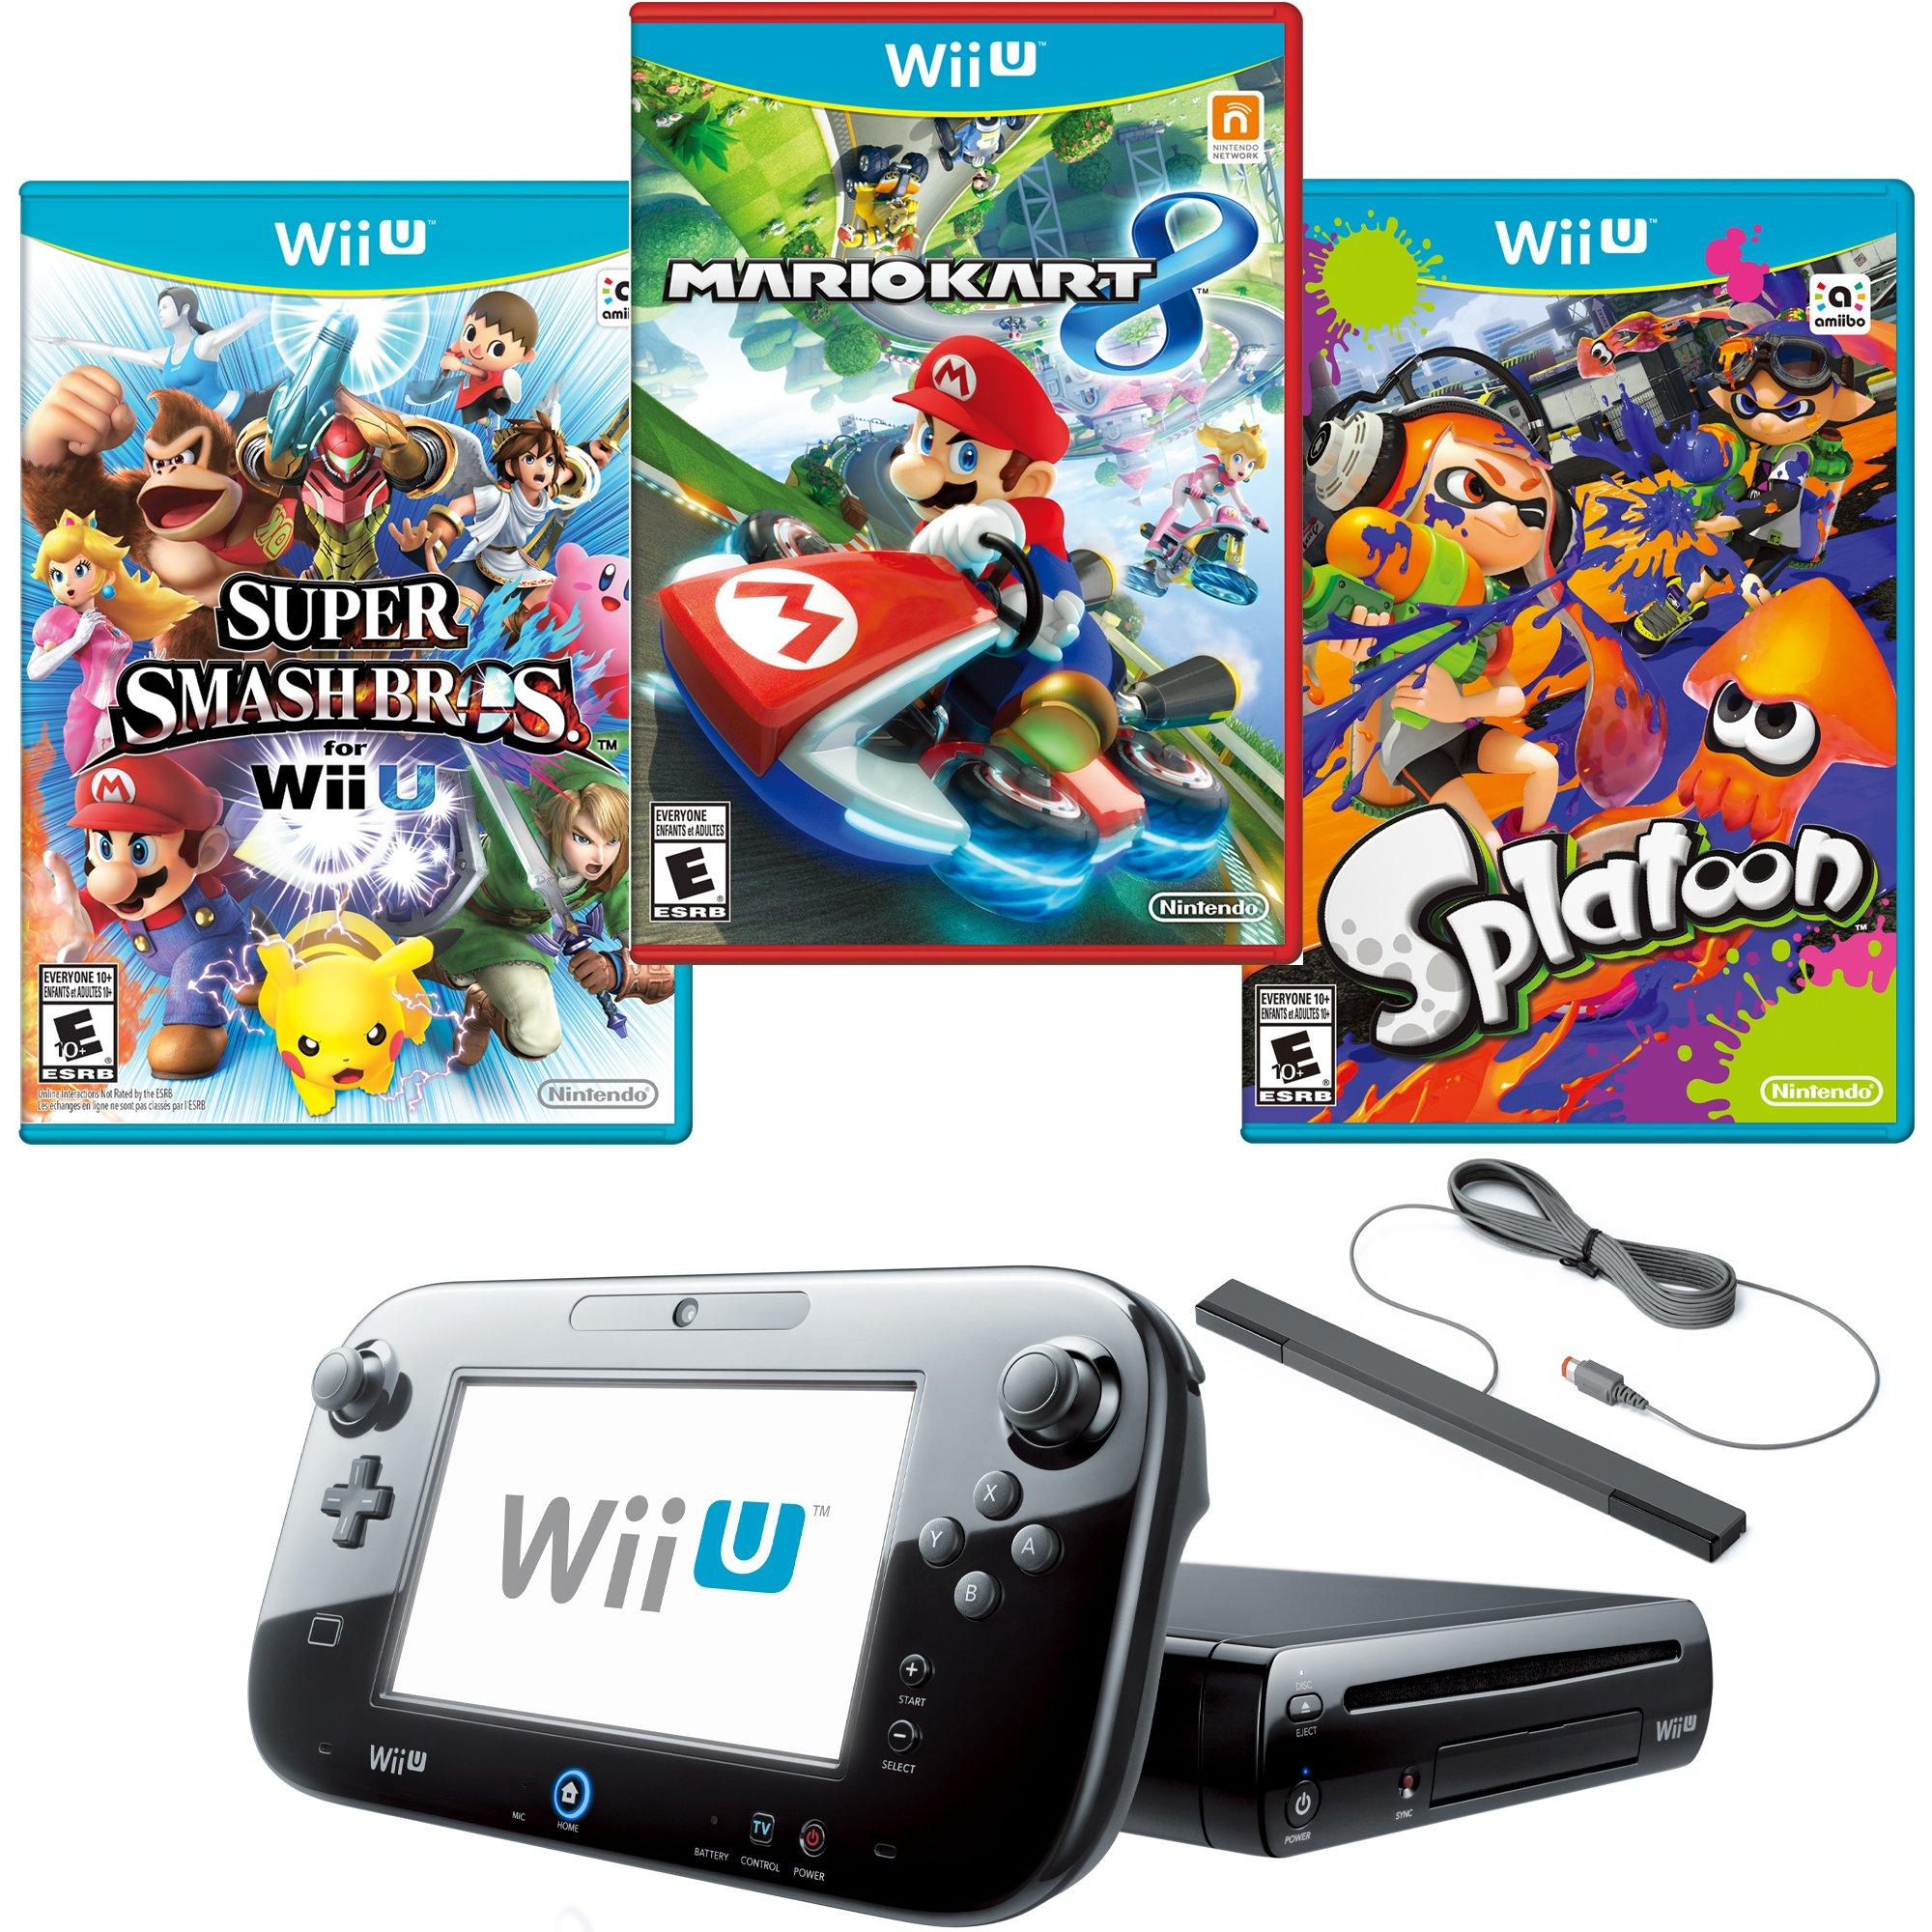 Wii U Ultimate Multiplayer Blast From The Past System